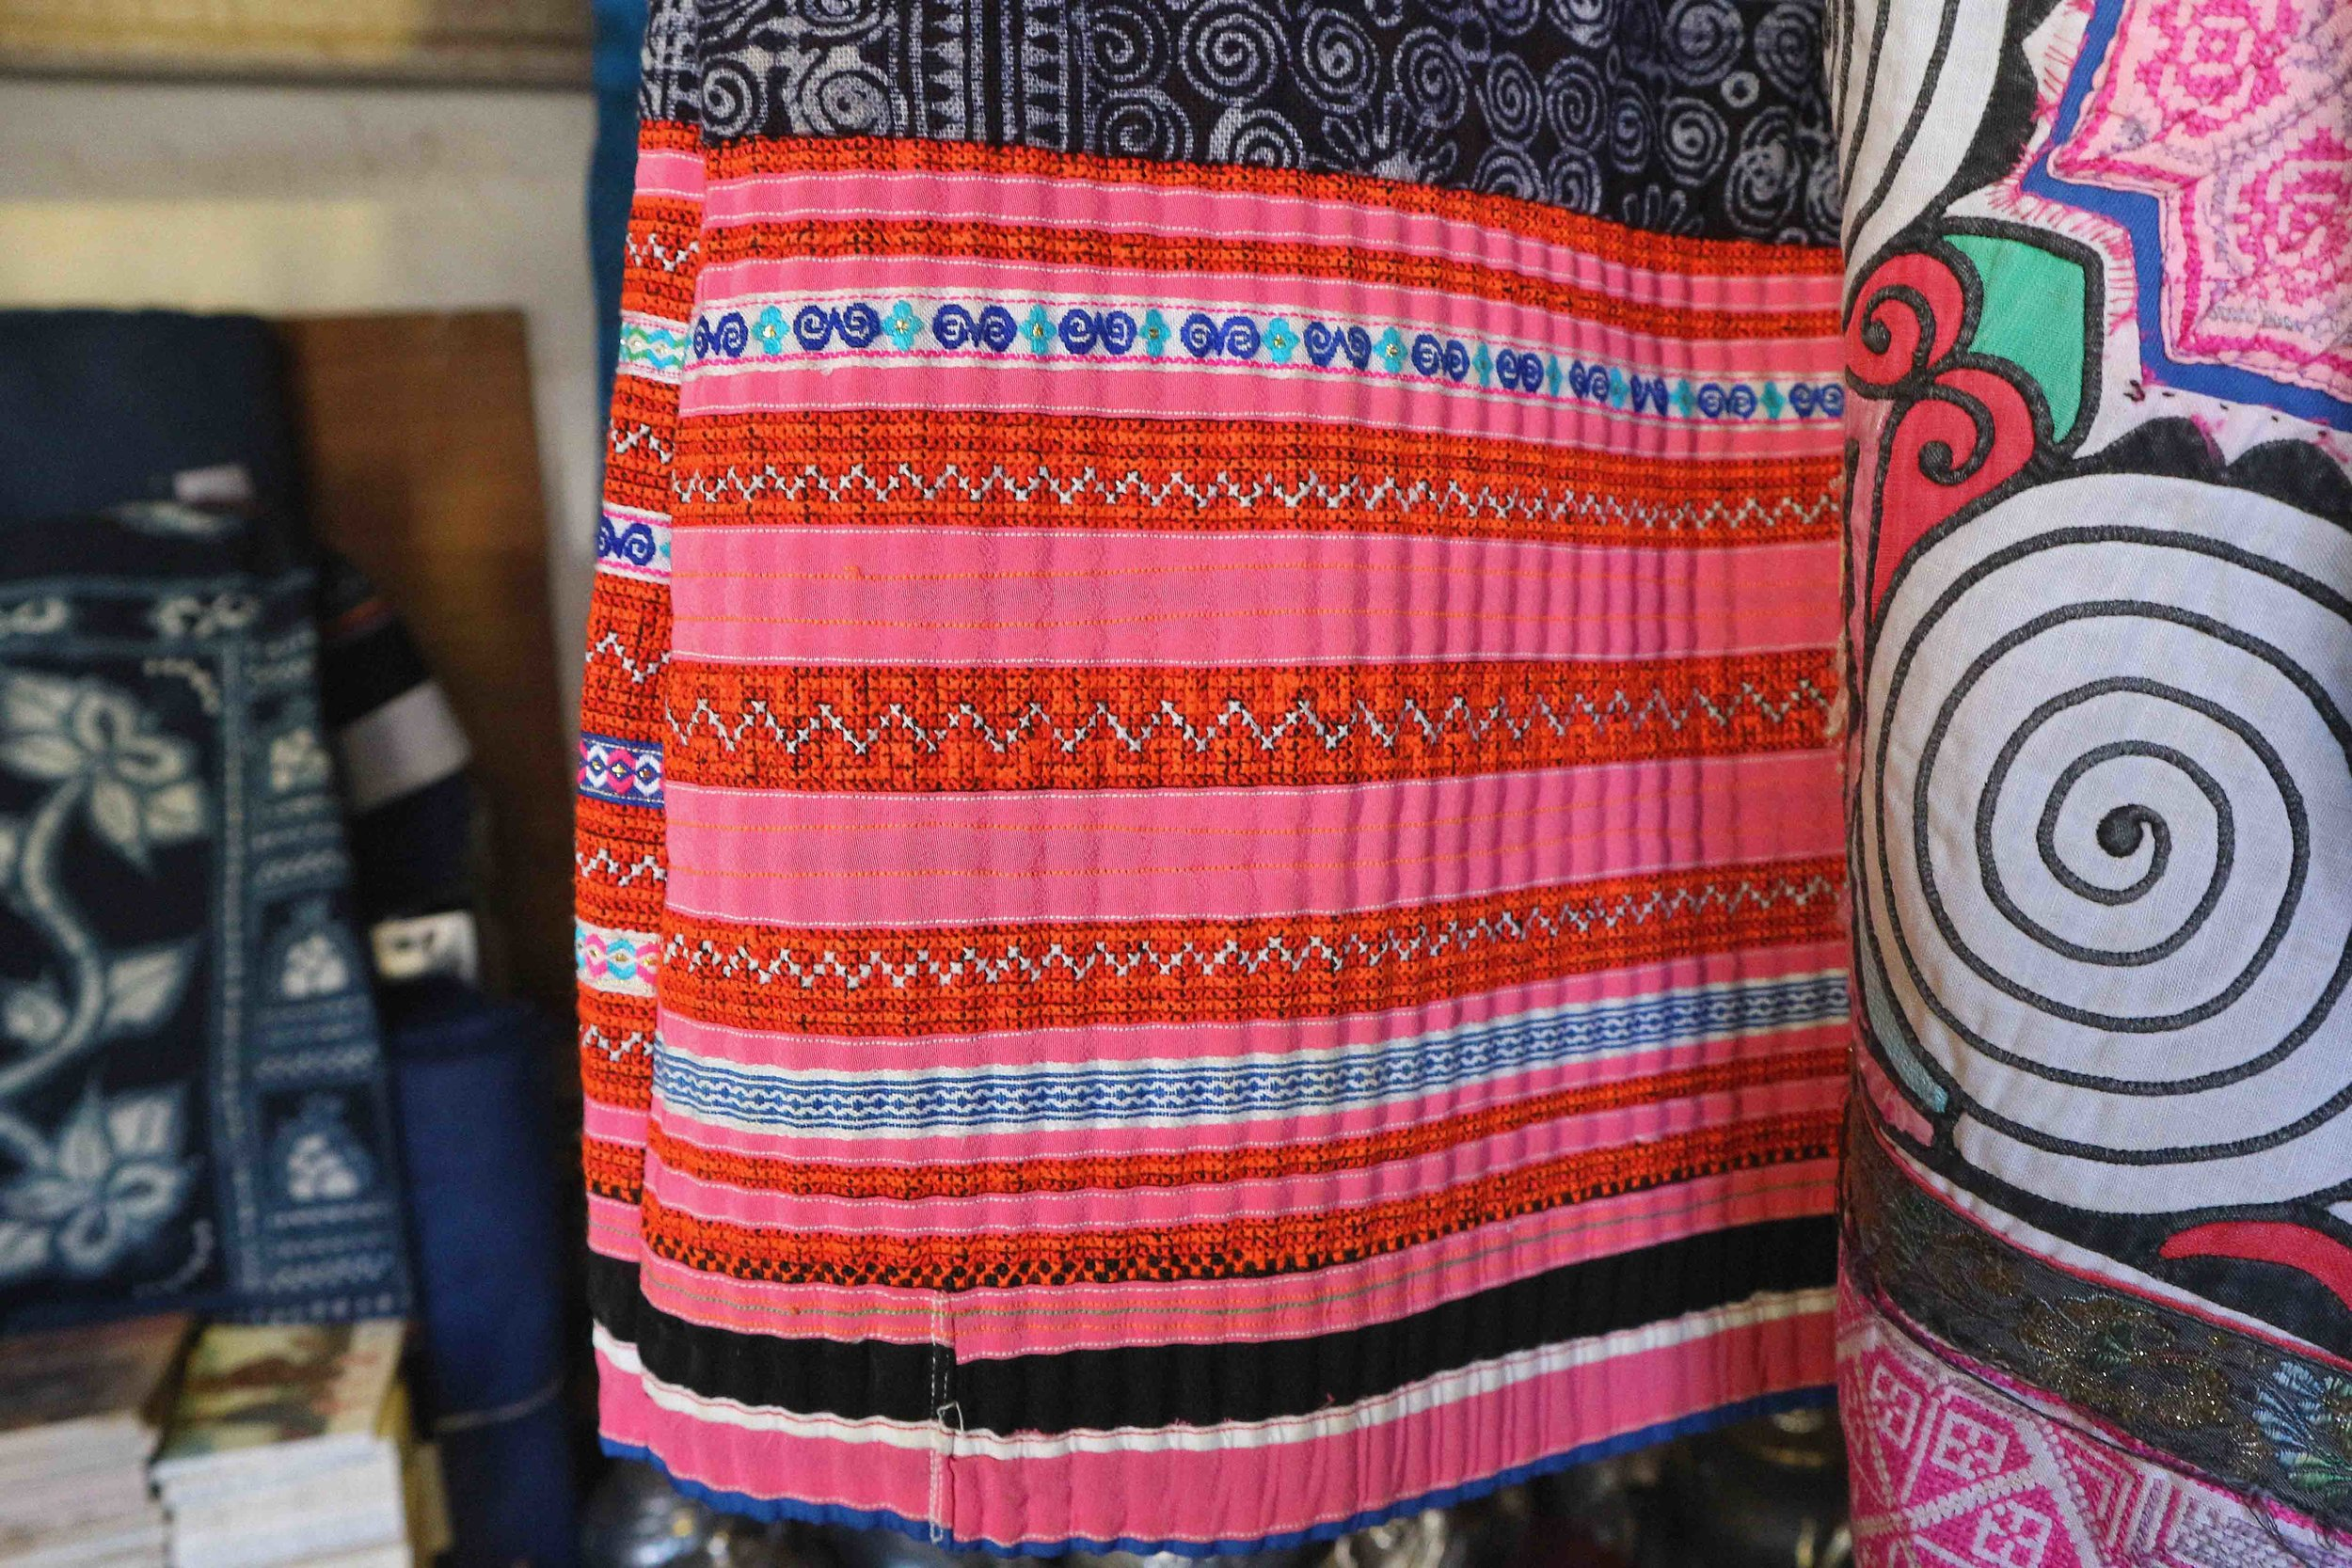 Newly produced clothing from the Miao minority, the cross stitching is done by hand but is quick to produce.  It is typical to find this embroidery detail on the hem of a batik print garments like this one